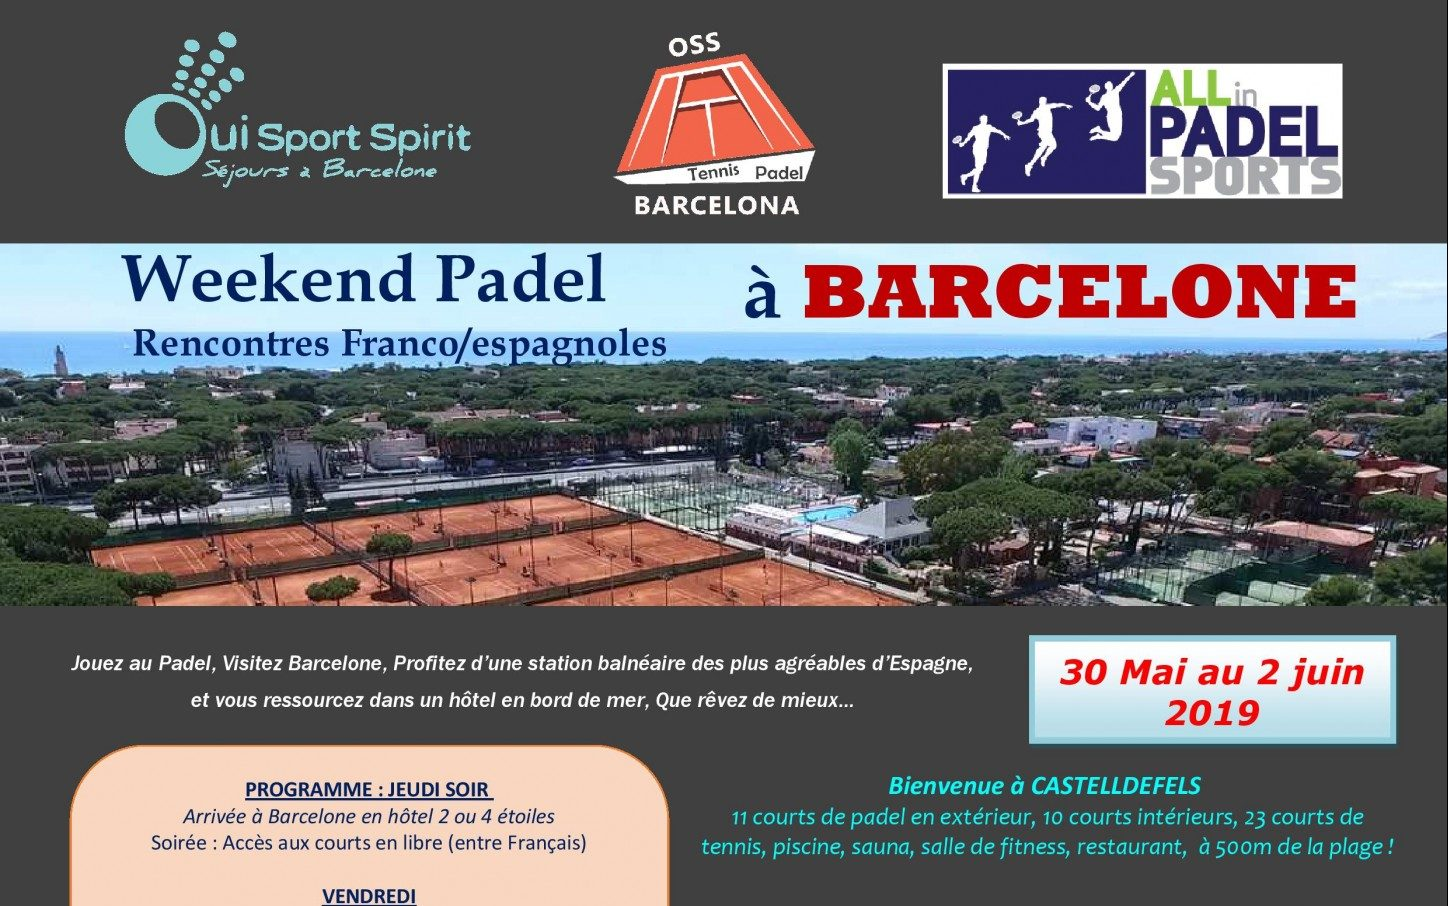 Stage Padel intensif by OSS Barcelone et All In Padel